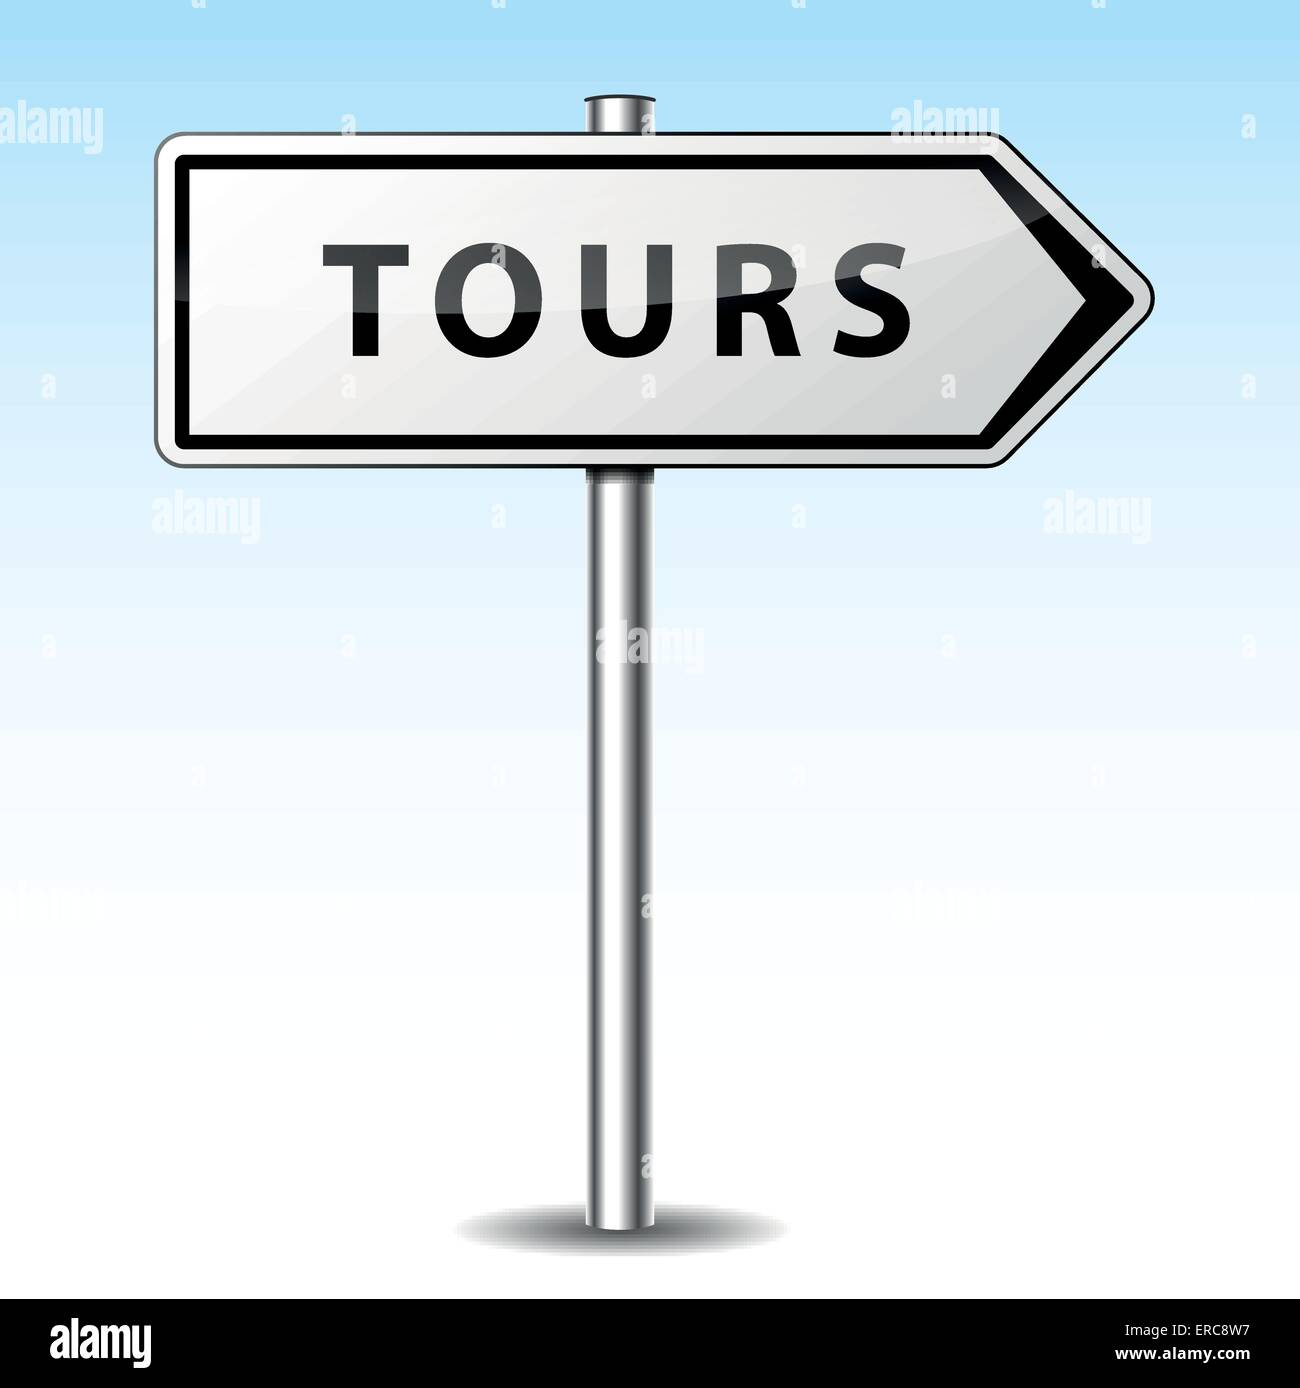 Vector illustration of tours directional sign on sky background - Stock Vector